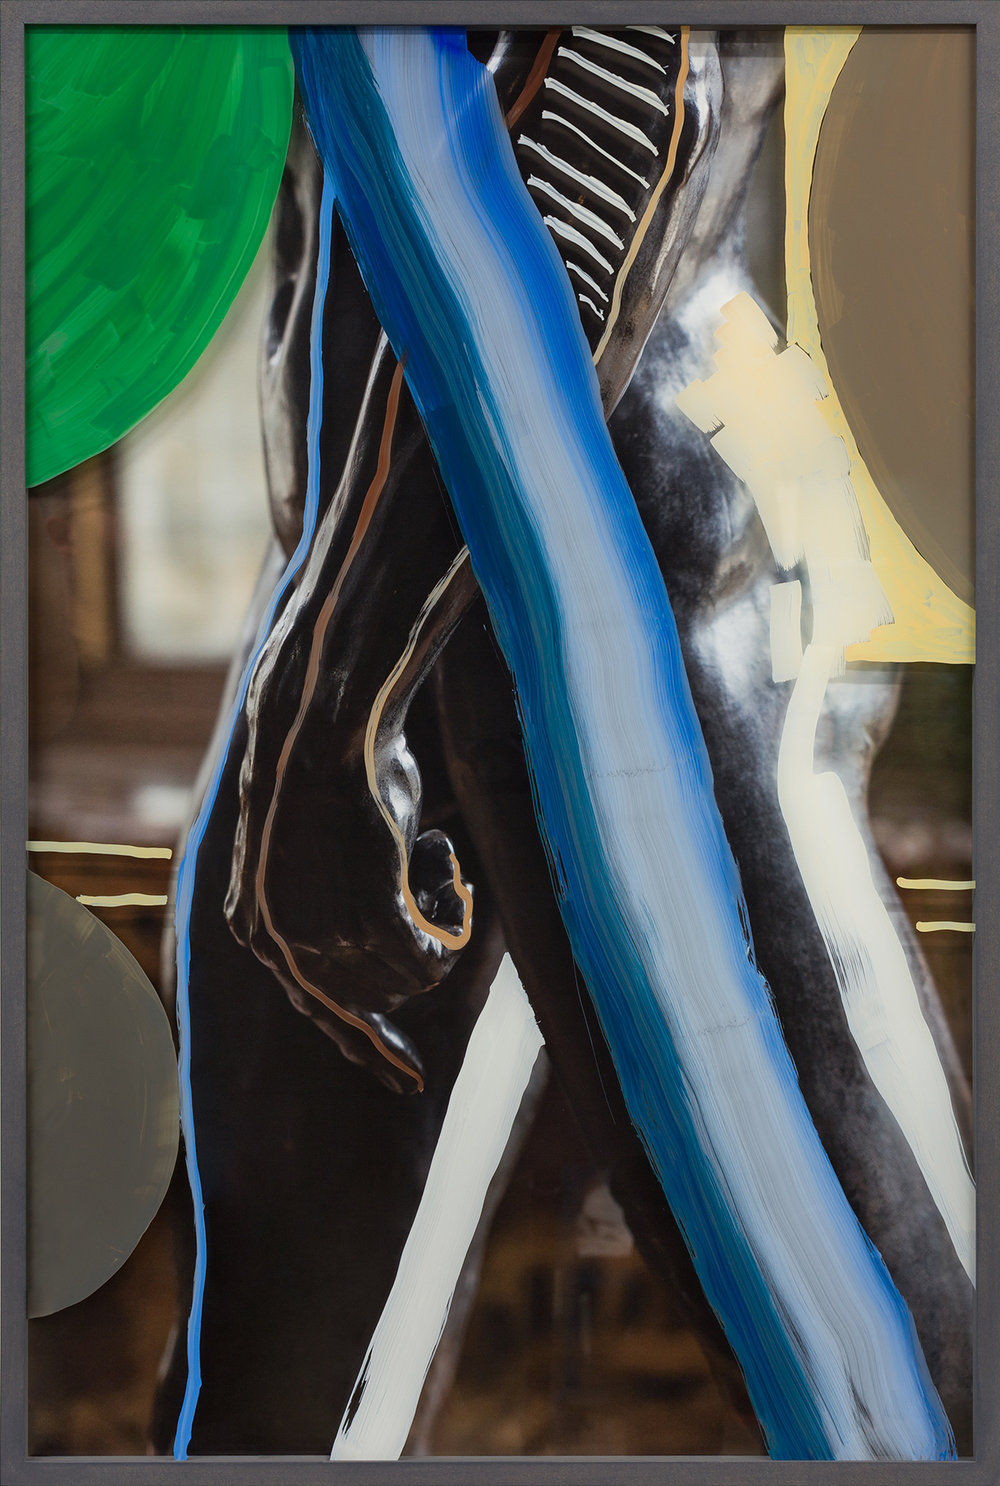 Untitled (Walking Man with blue stroke) 2018, hand-painted glass over archival pigment print 91.5 x 61 cm / 36 x 24 in. Unique work